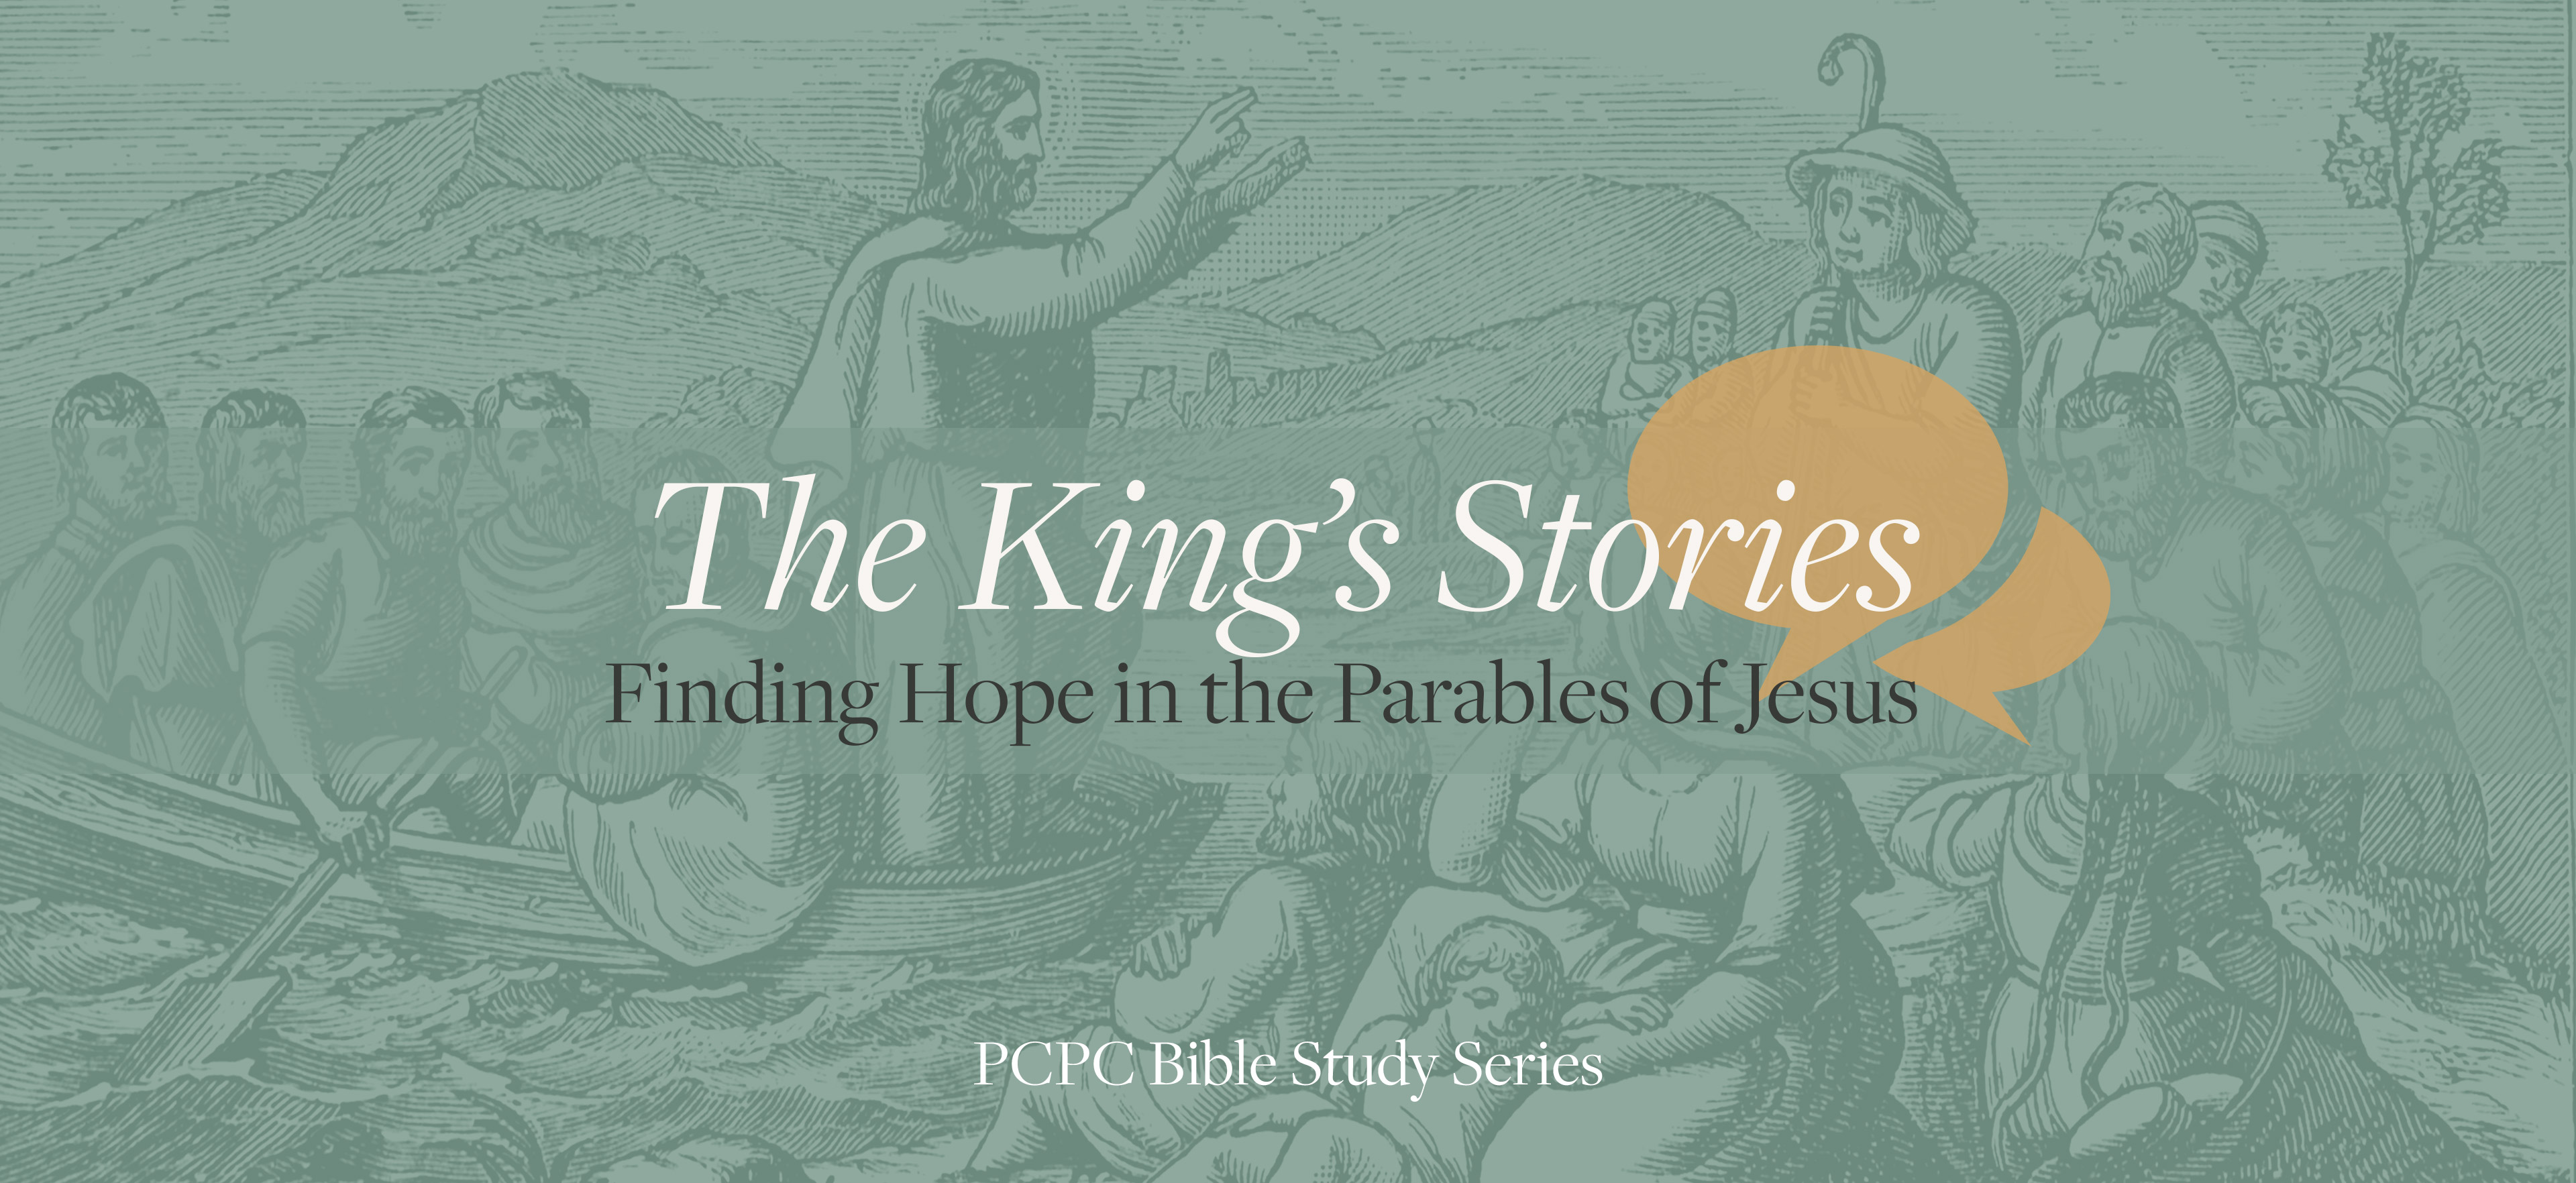 The King's Stories: Finding Hope in the Parables of Jesus